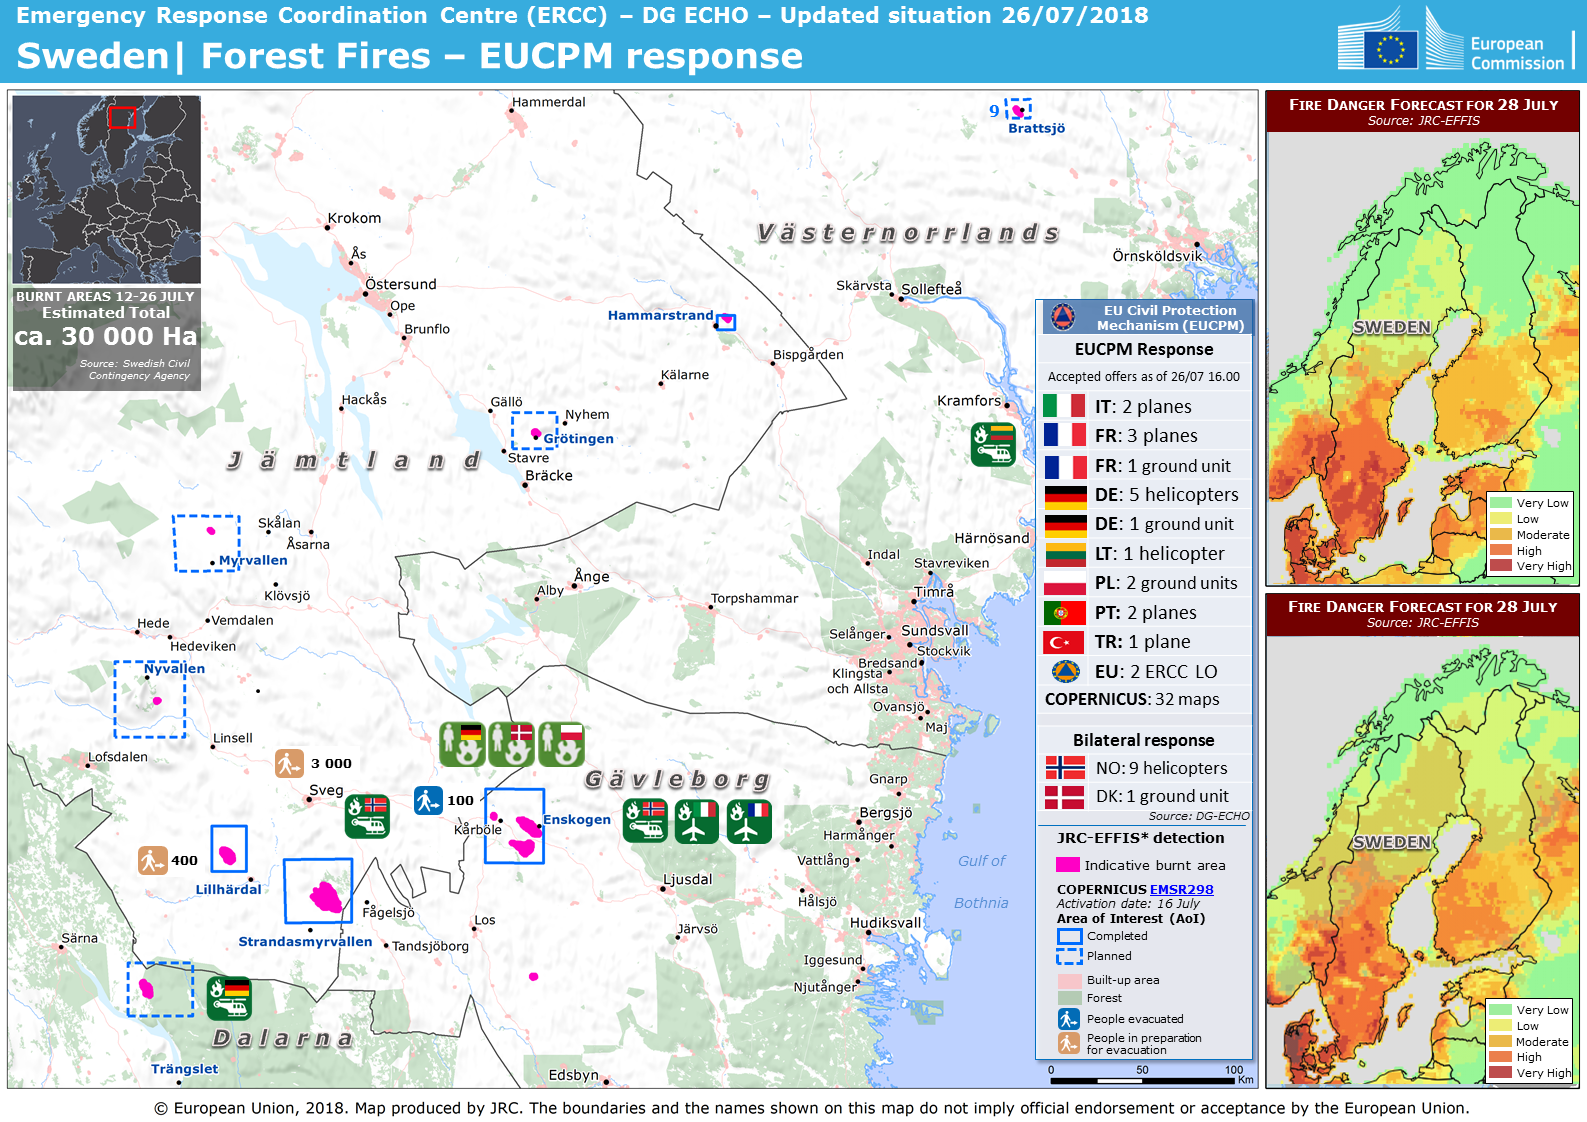 ECDM_20180720_UPD26JUL_Sweden_ForestFires.png